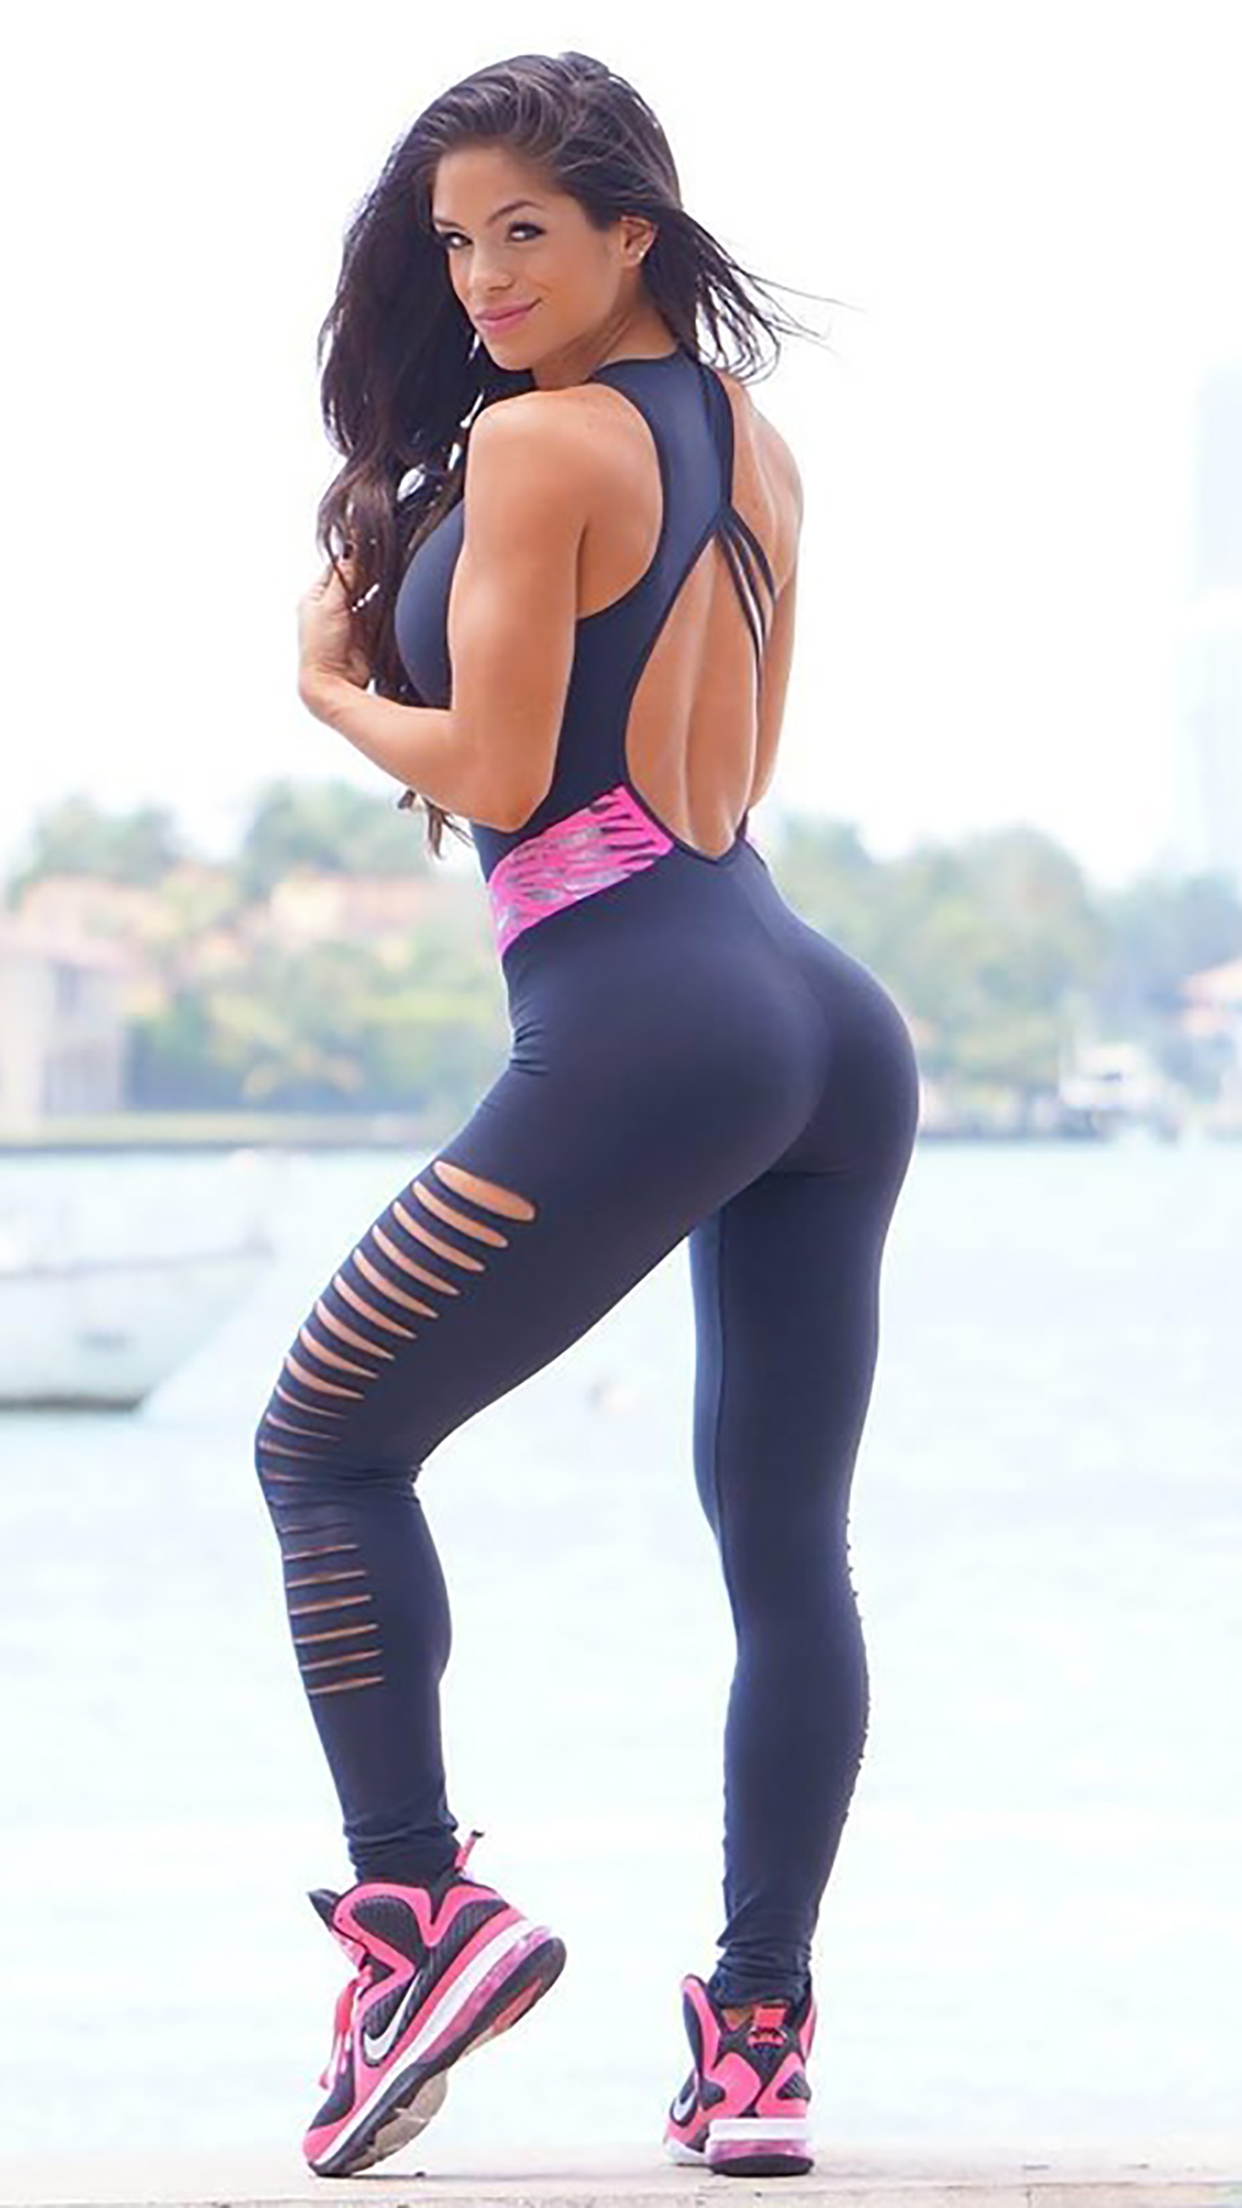 Michelle Lewin Fitness 3Wallpapers iPhone Parallax Michelle Lewin : Fitness